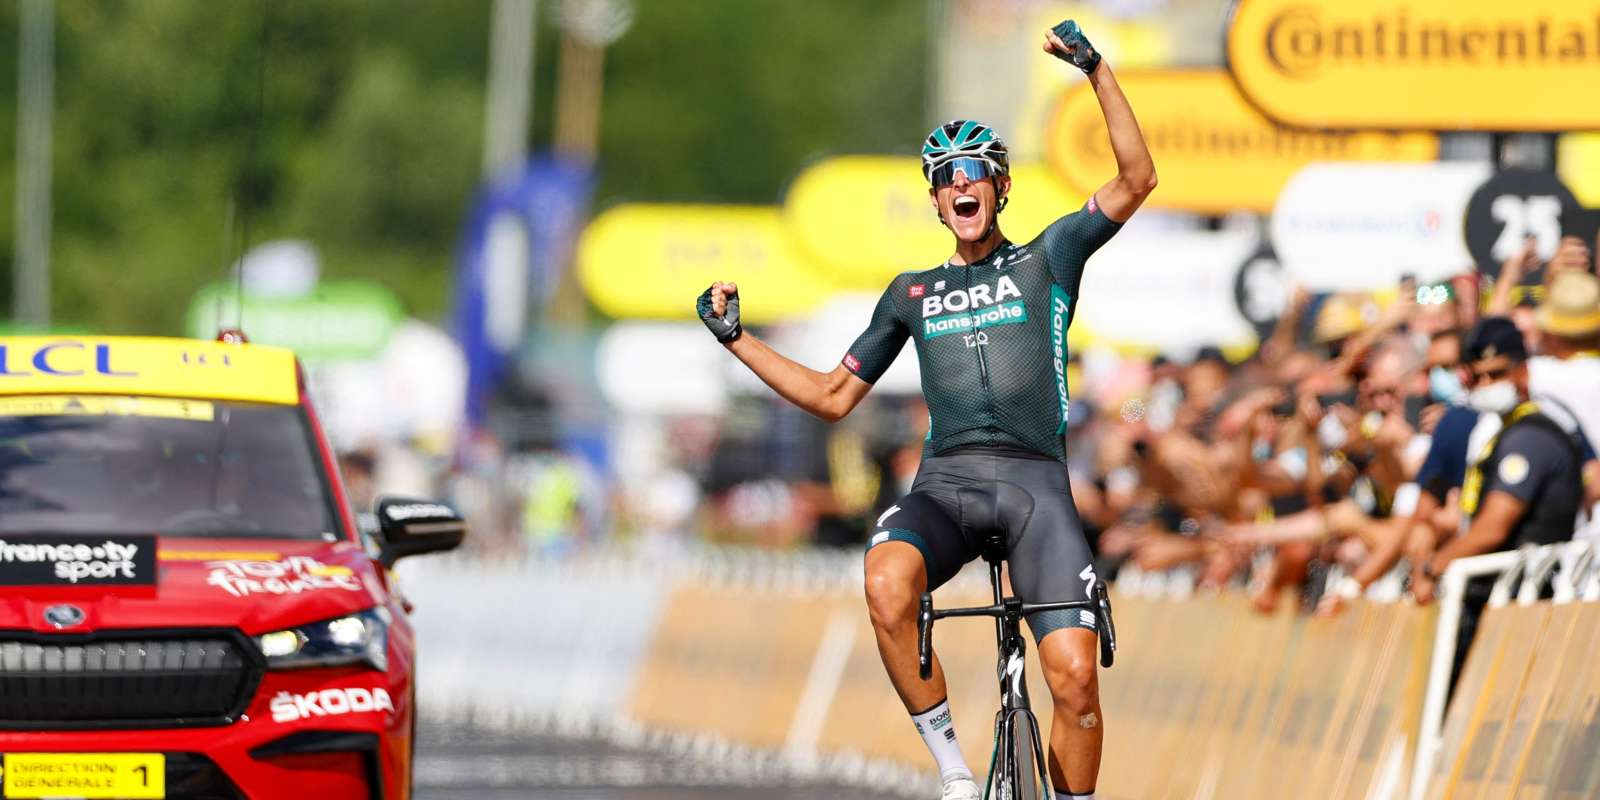 Stage winner Team Bora Hansgrohe's Nils Politt of Germany celebrates as he crosses the finish line at the end of the 12th stage of the 108th edition of the Tour de France cycling race, 159 km between Saint-Paul-Trois-Chateaux and Nimes, on July 8, 2021. / AFP / Thomas SAMSON